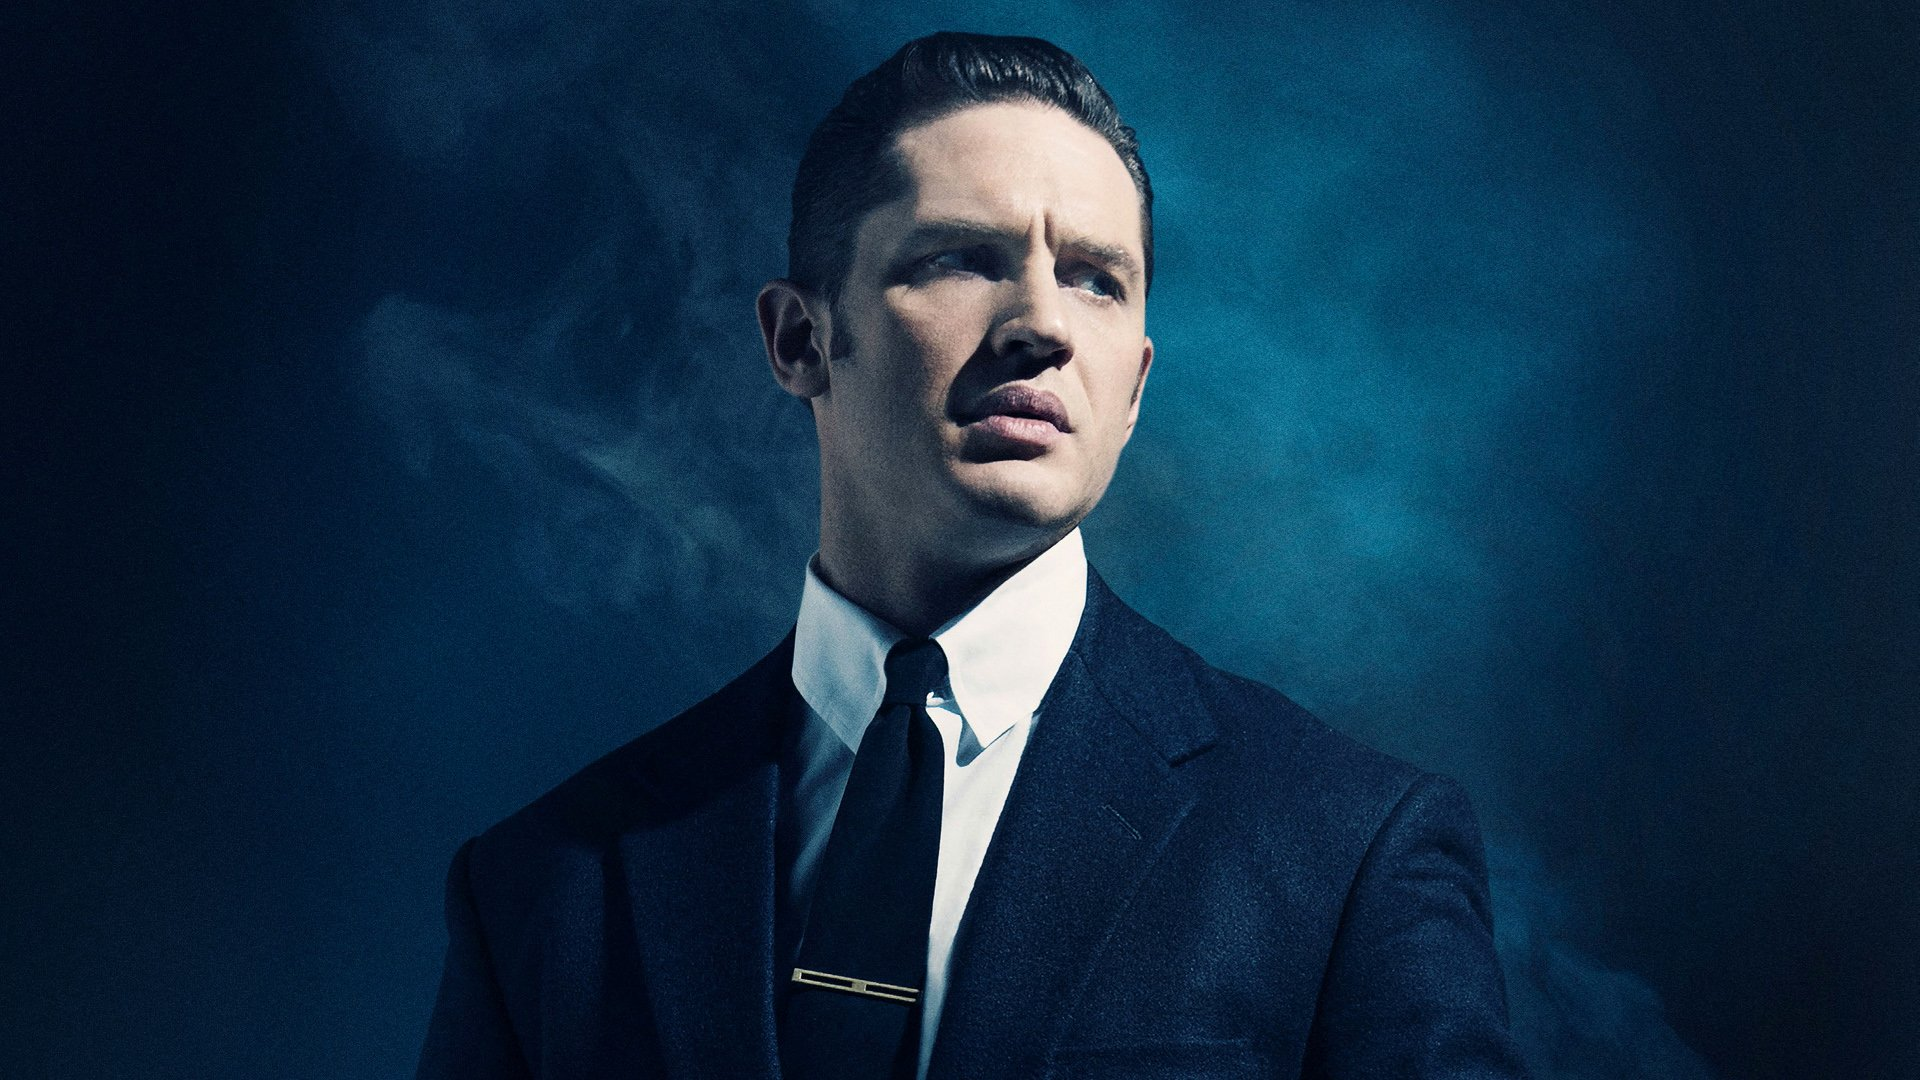 Tom Hardy Wallpaper 13   1920 X 1080 stmednet 1920x1080